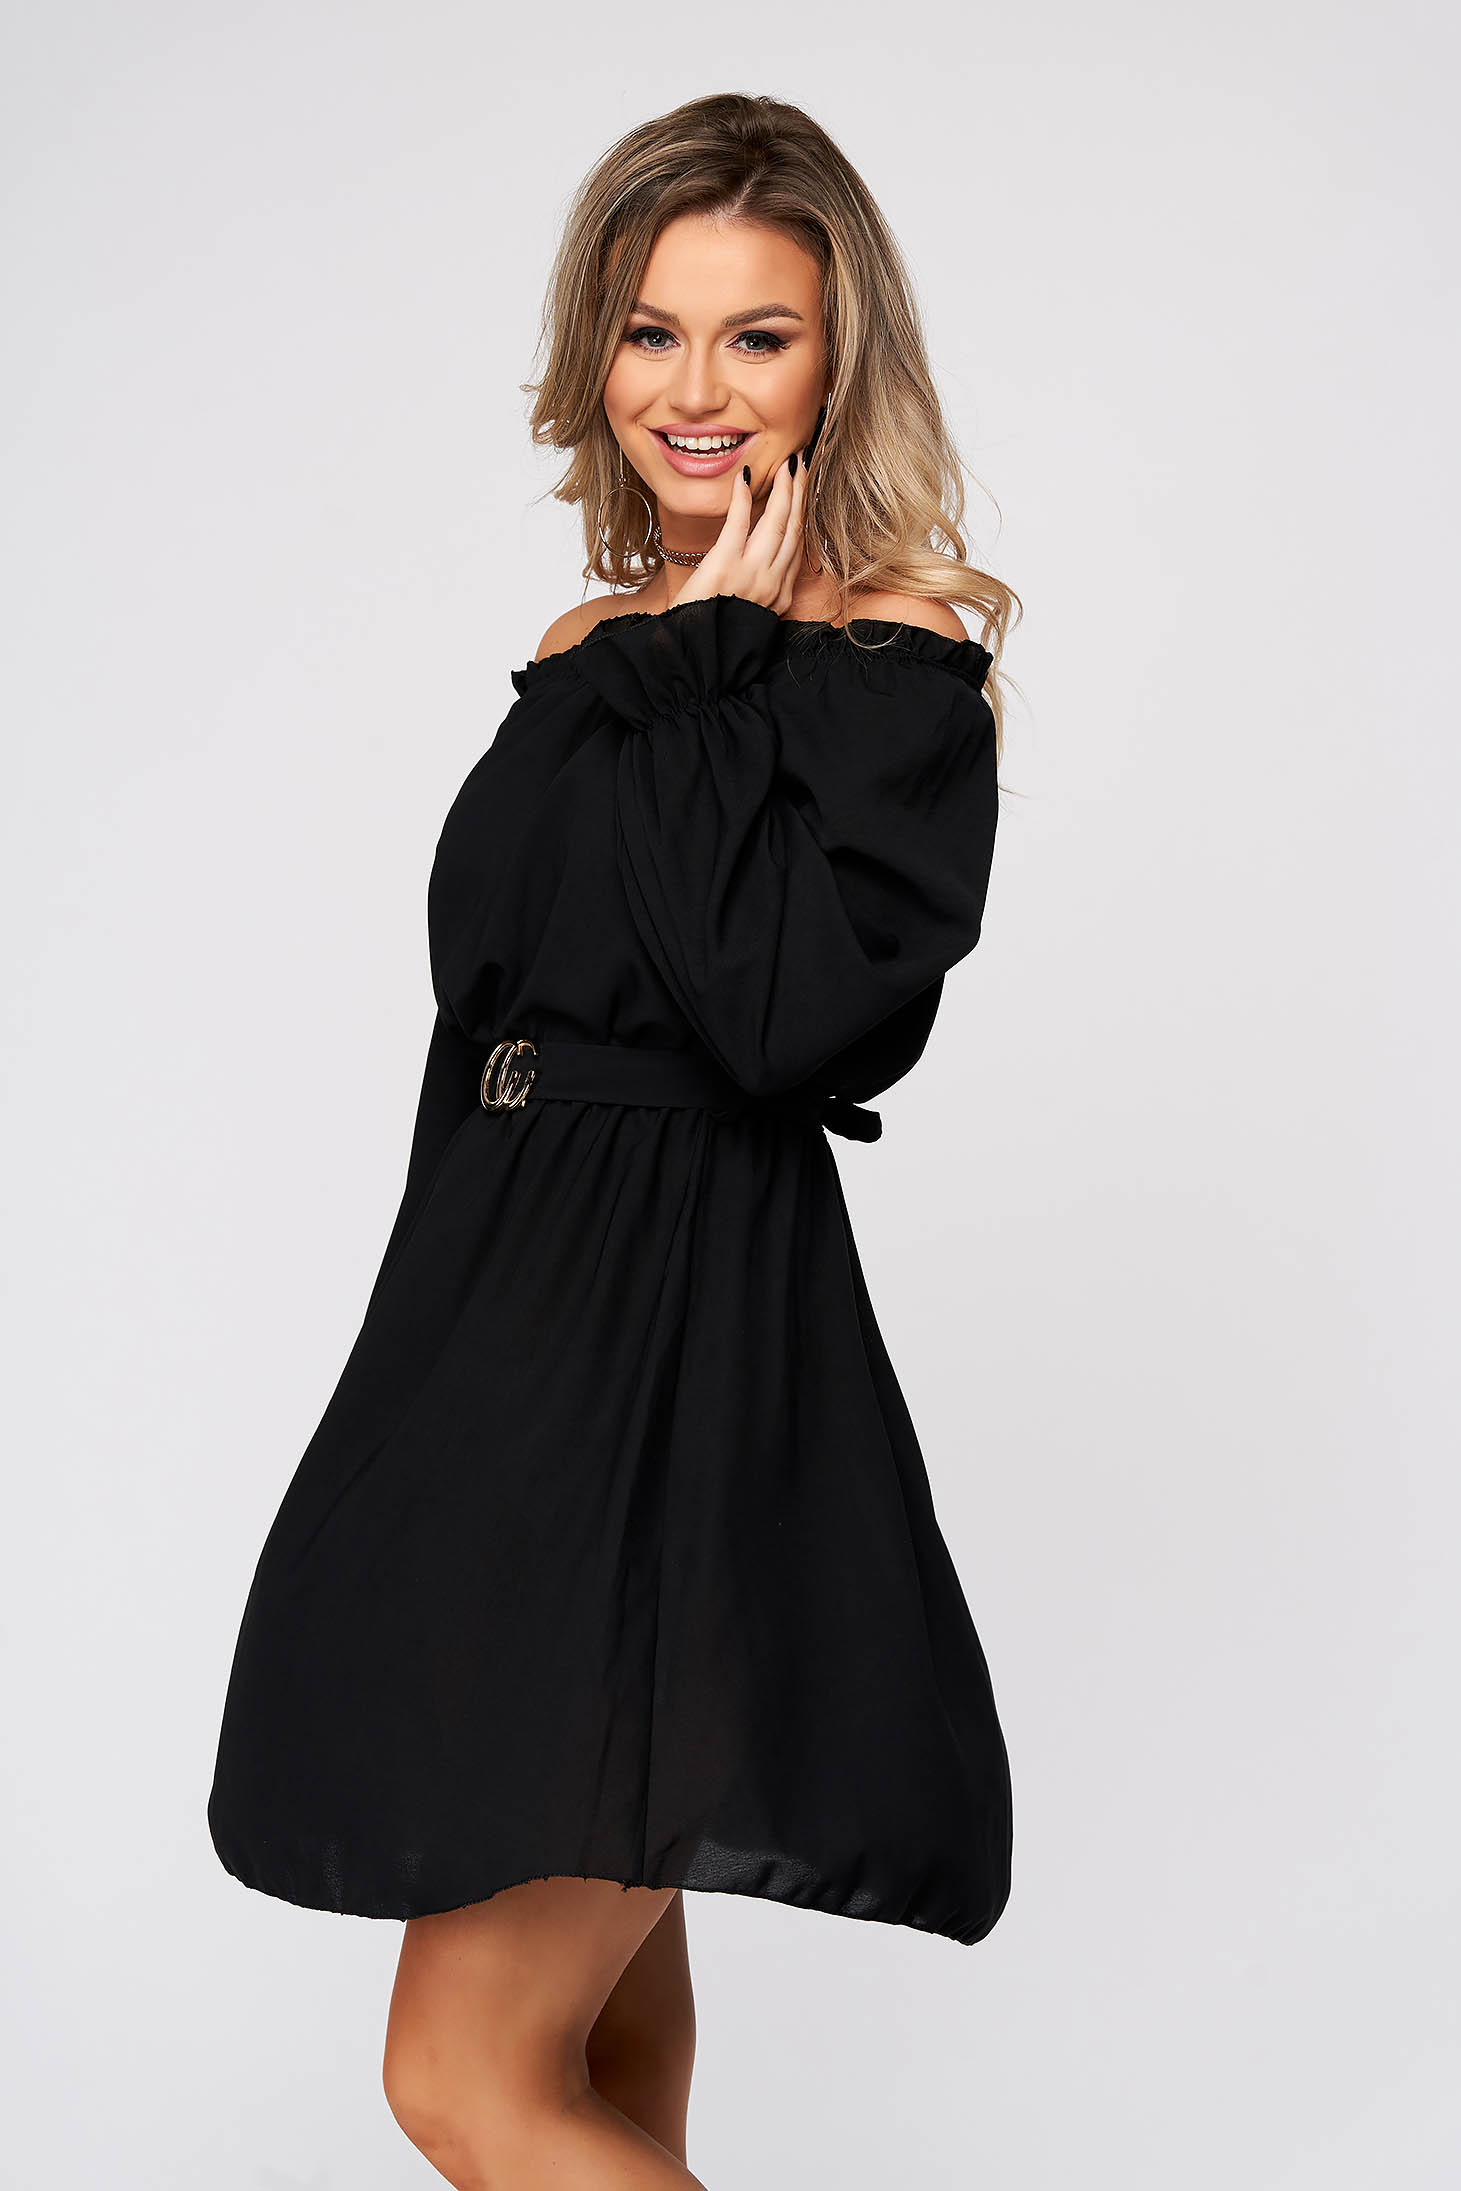 Black dress short cut daily thin fabric naked shoulders straight